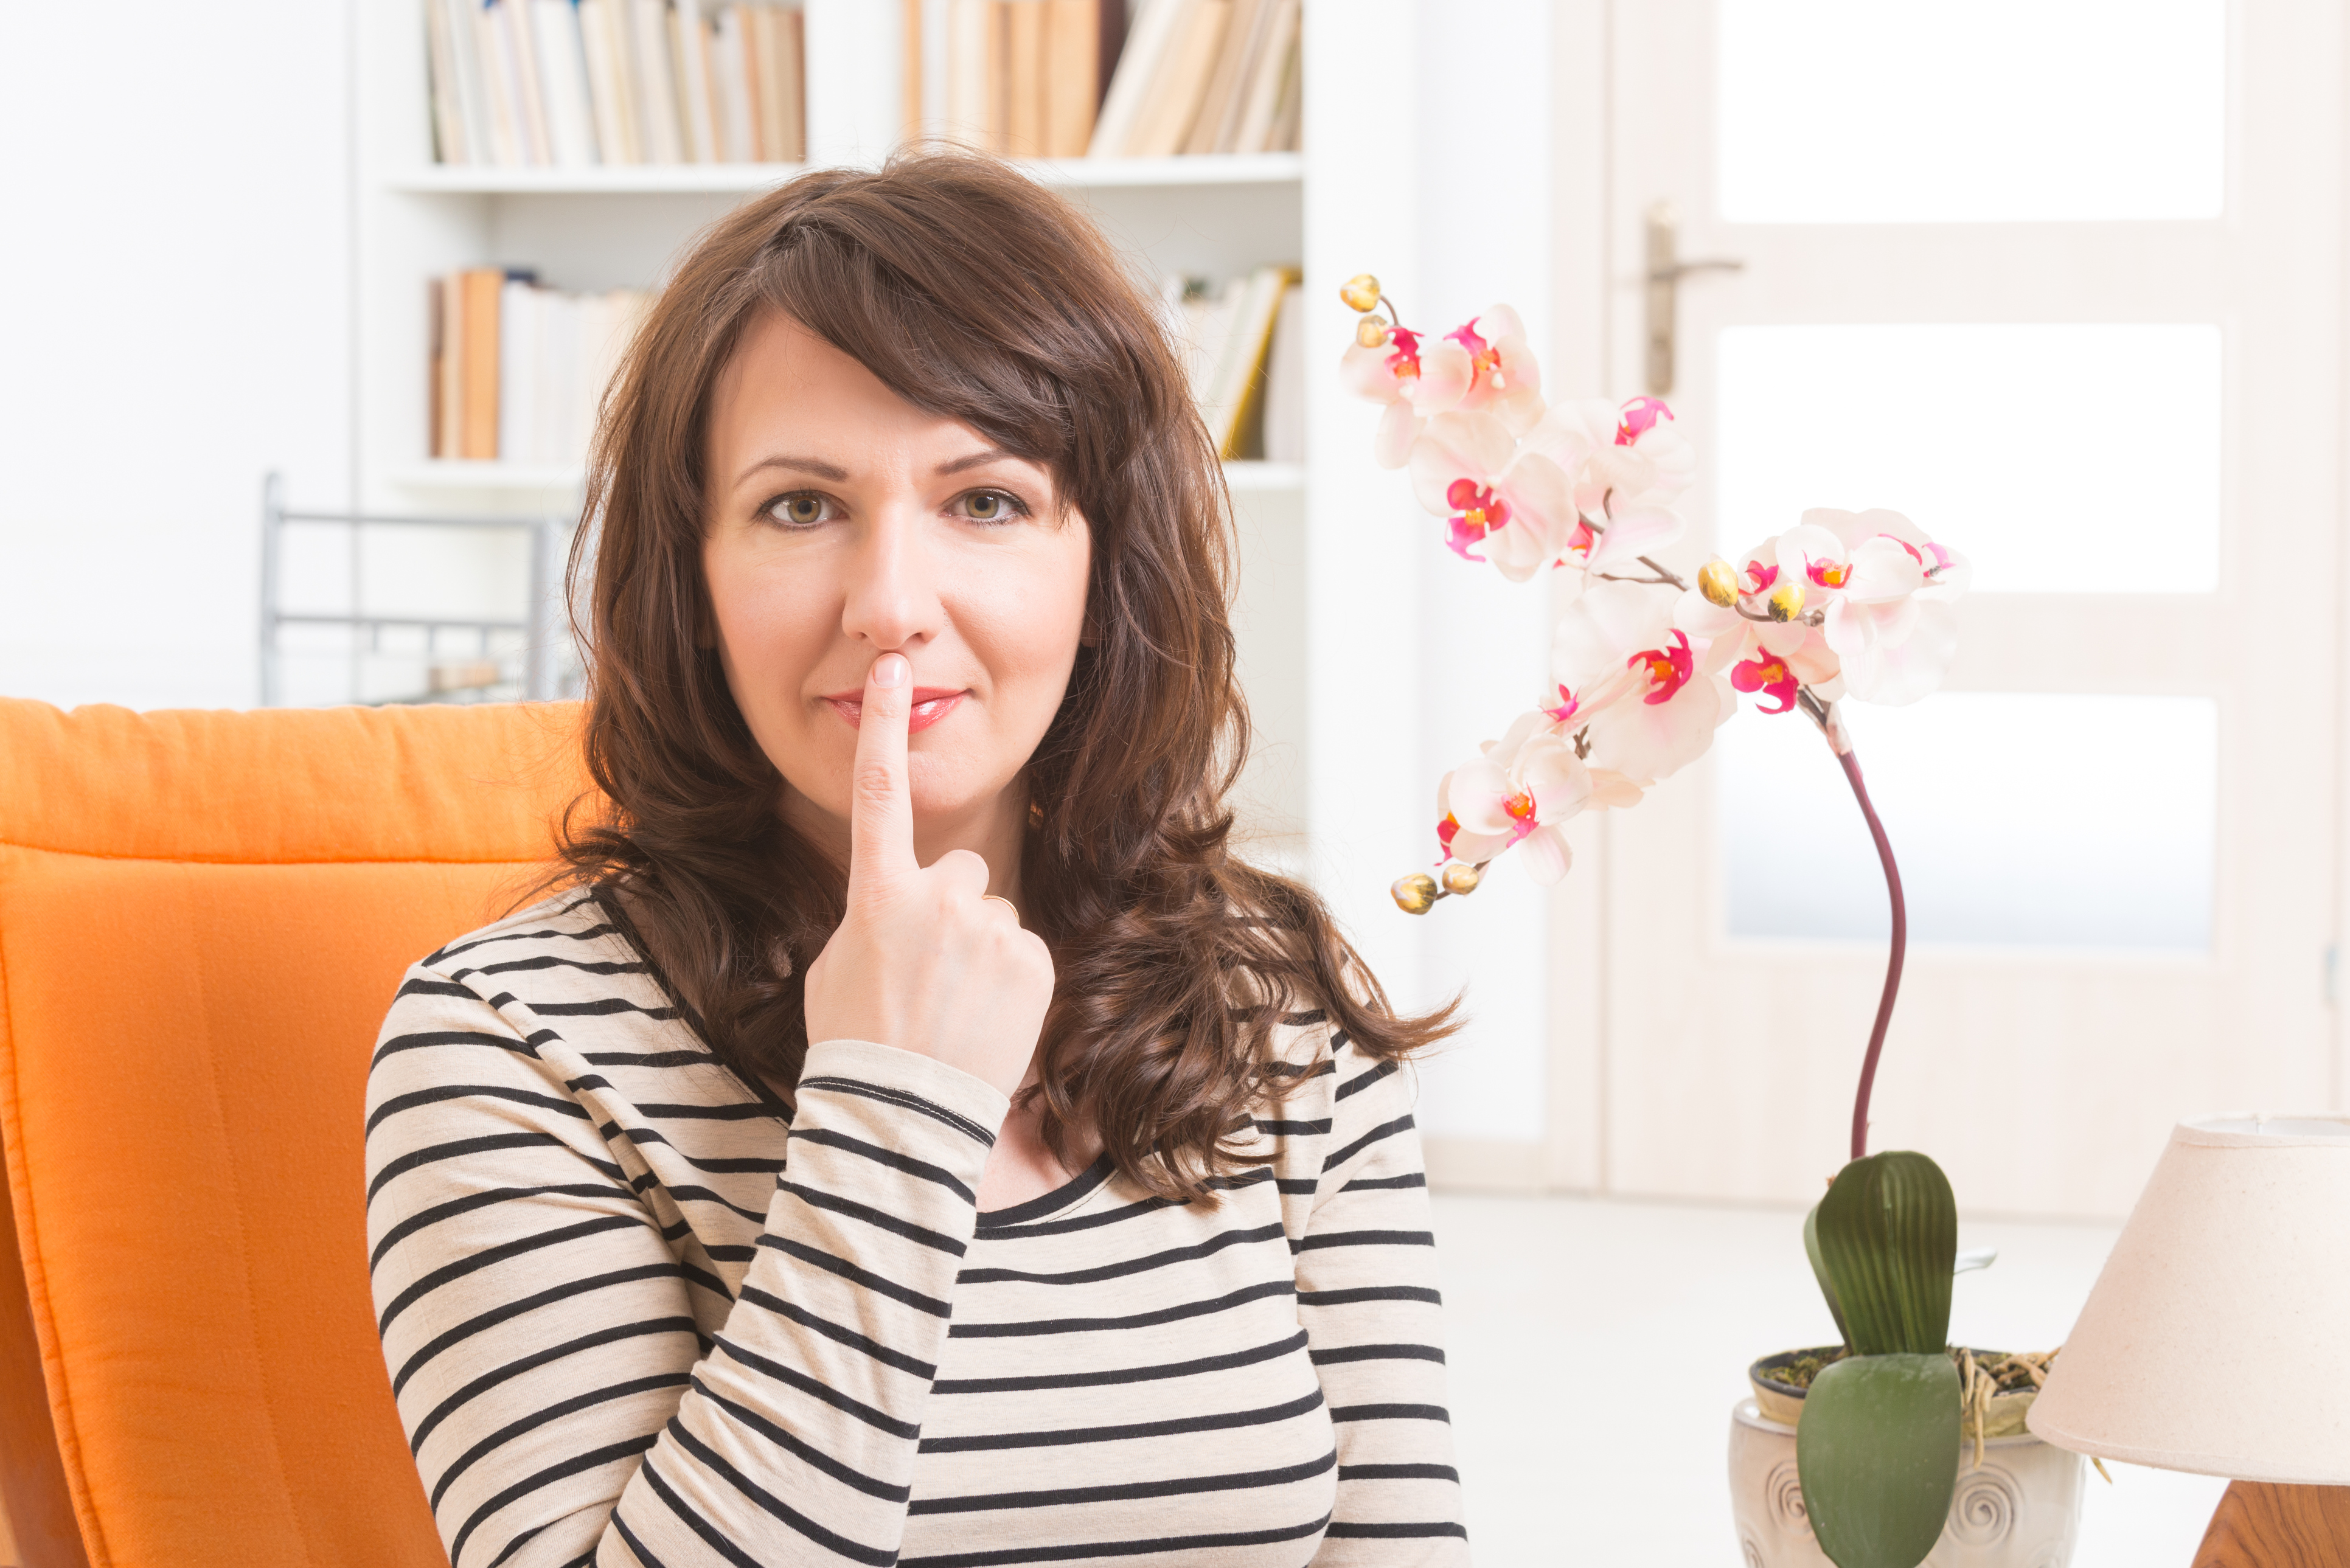 Woman doing EFT on the under nose point. Emotional Freedom Techniques, tapping, a form of counseling intervention that draws on various theories of alternative medicine.